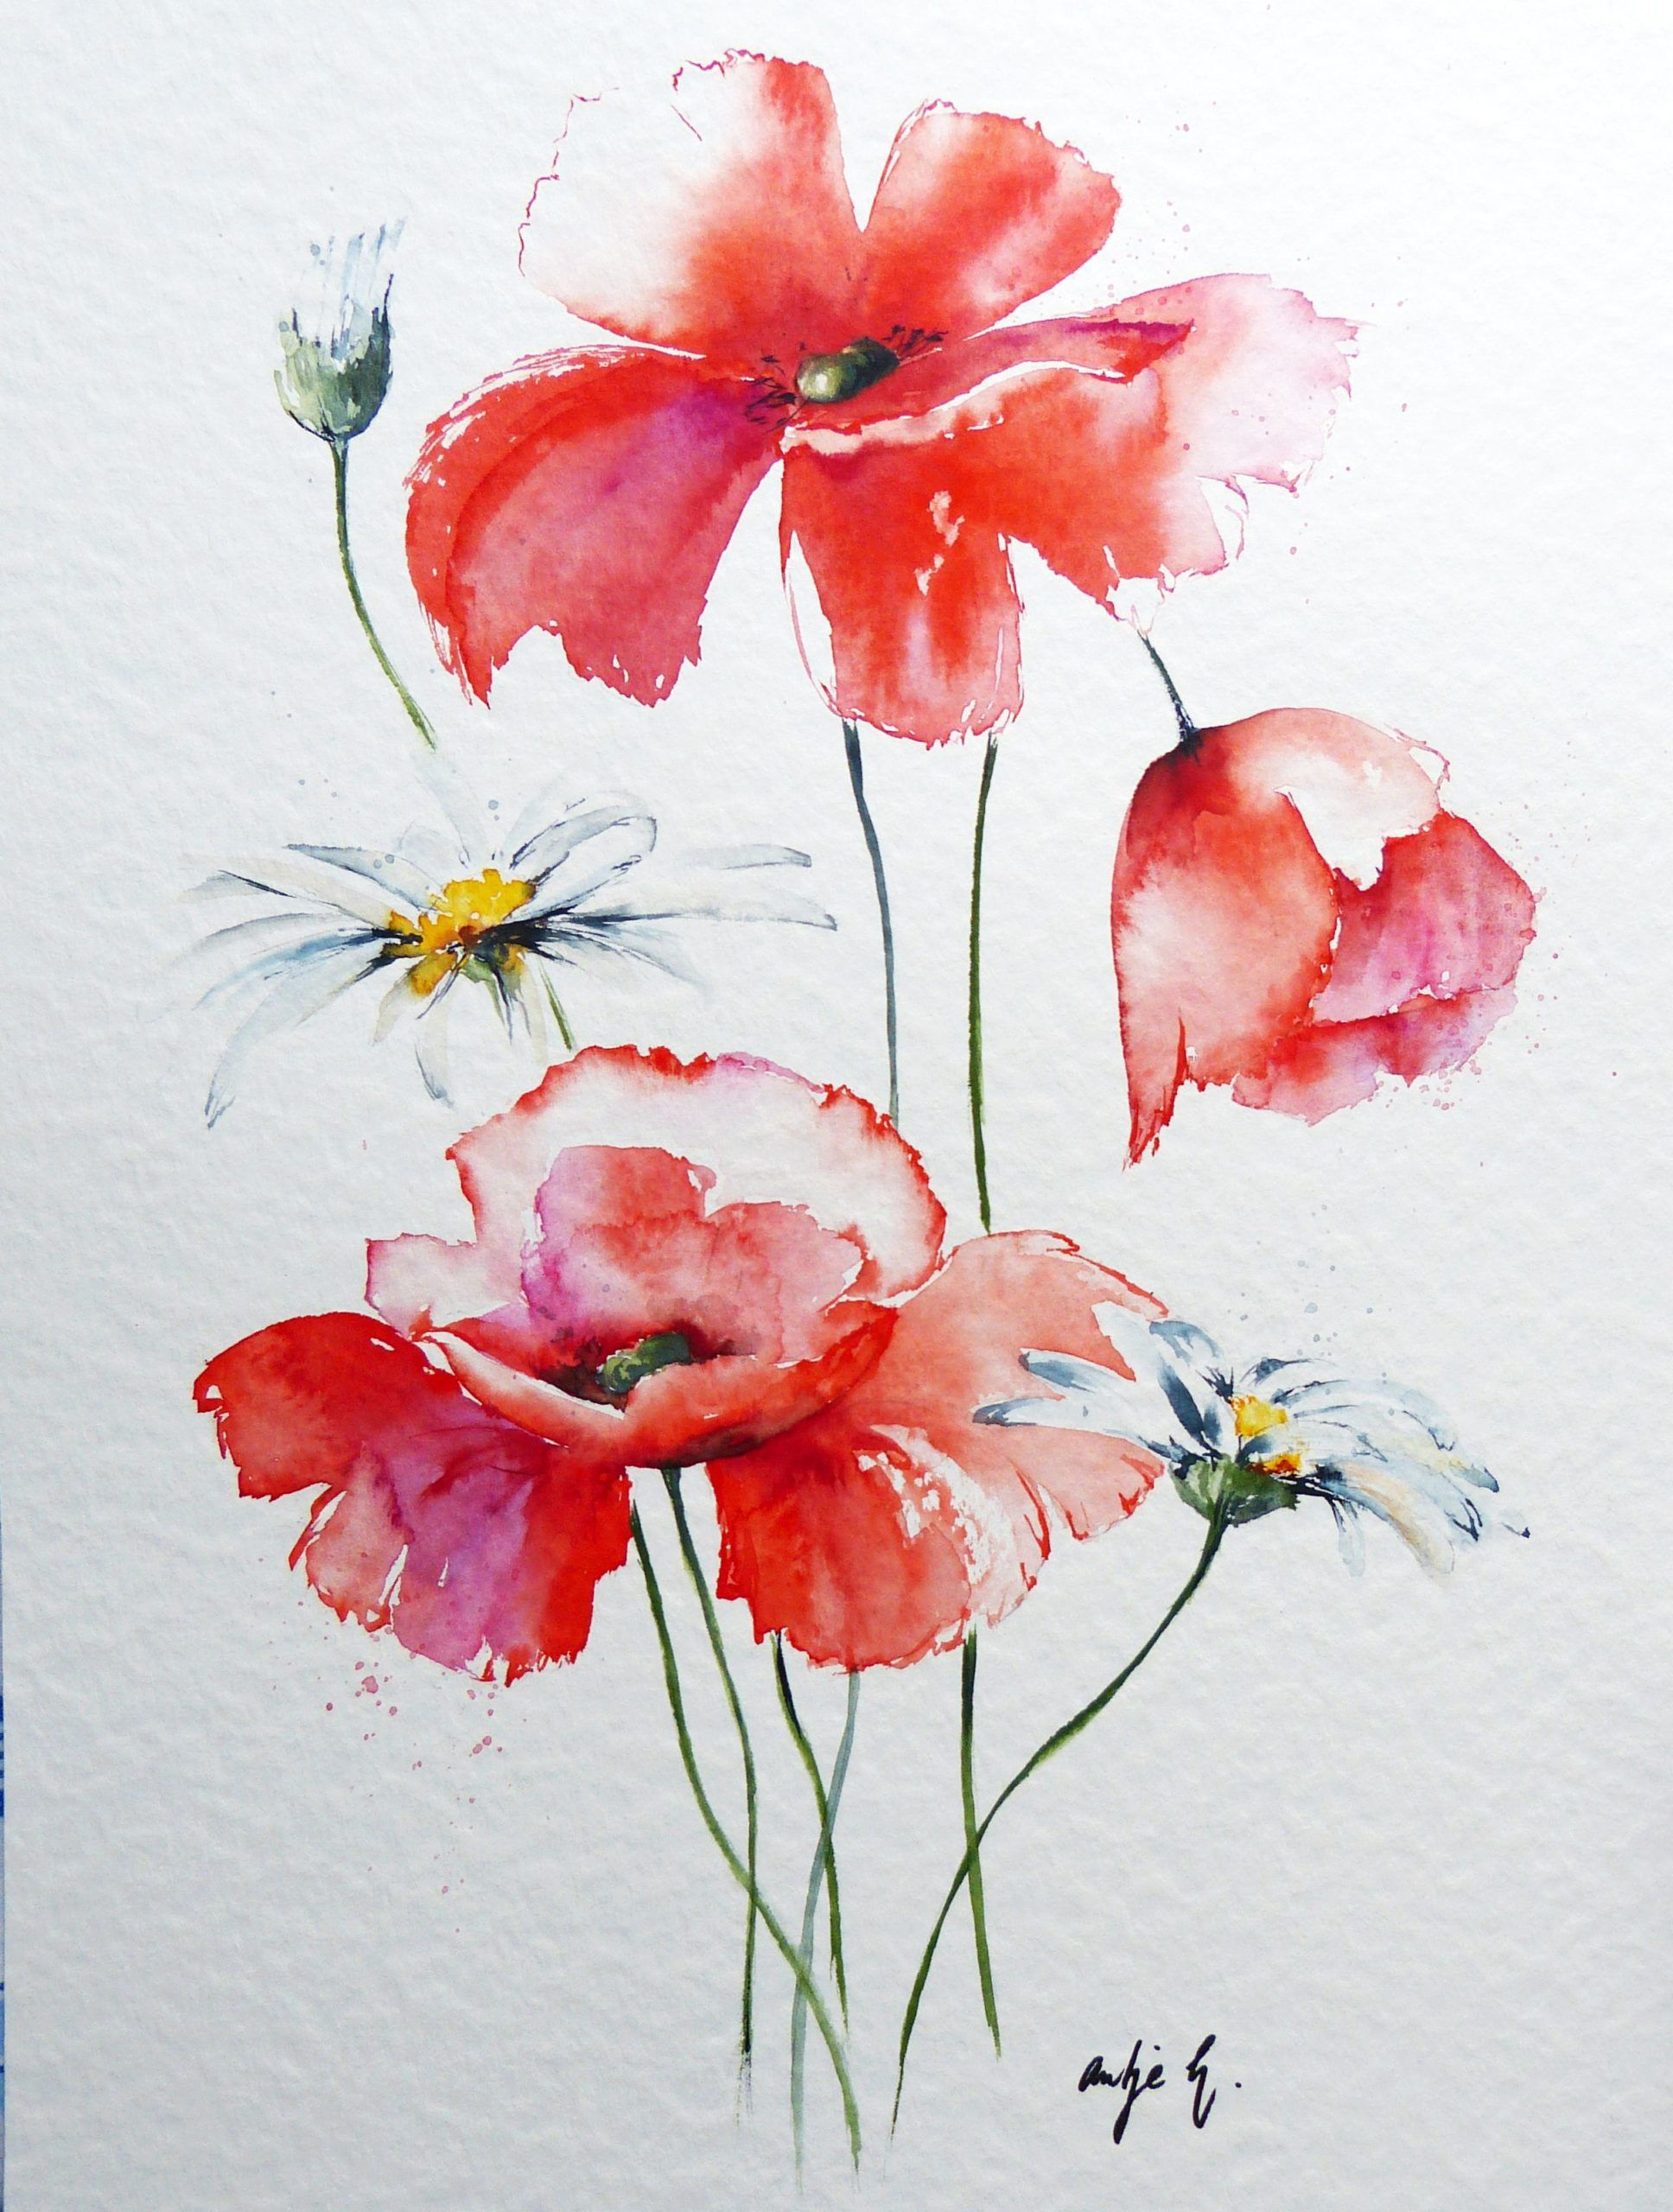 Mohn Margeriten Watercolor 30x40 Antje Hettner Aquarell Watercolor Kunst Mal In 2020 Flower Art Painting Basic Watercolor Watercolor Art Paintings